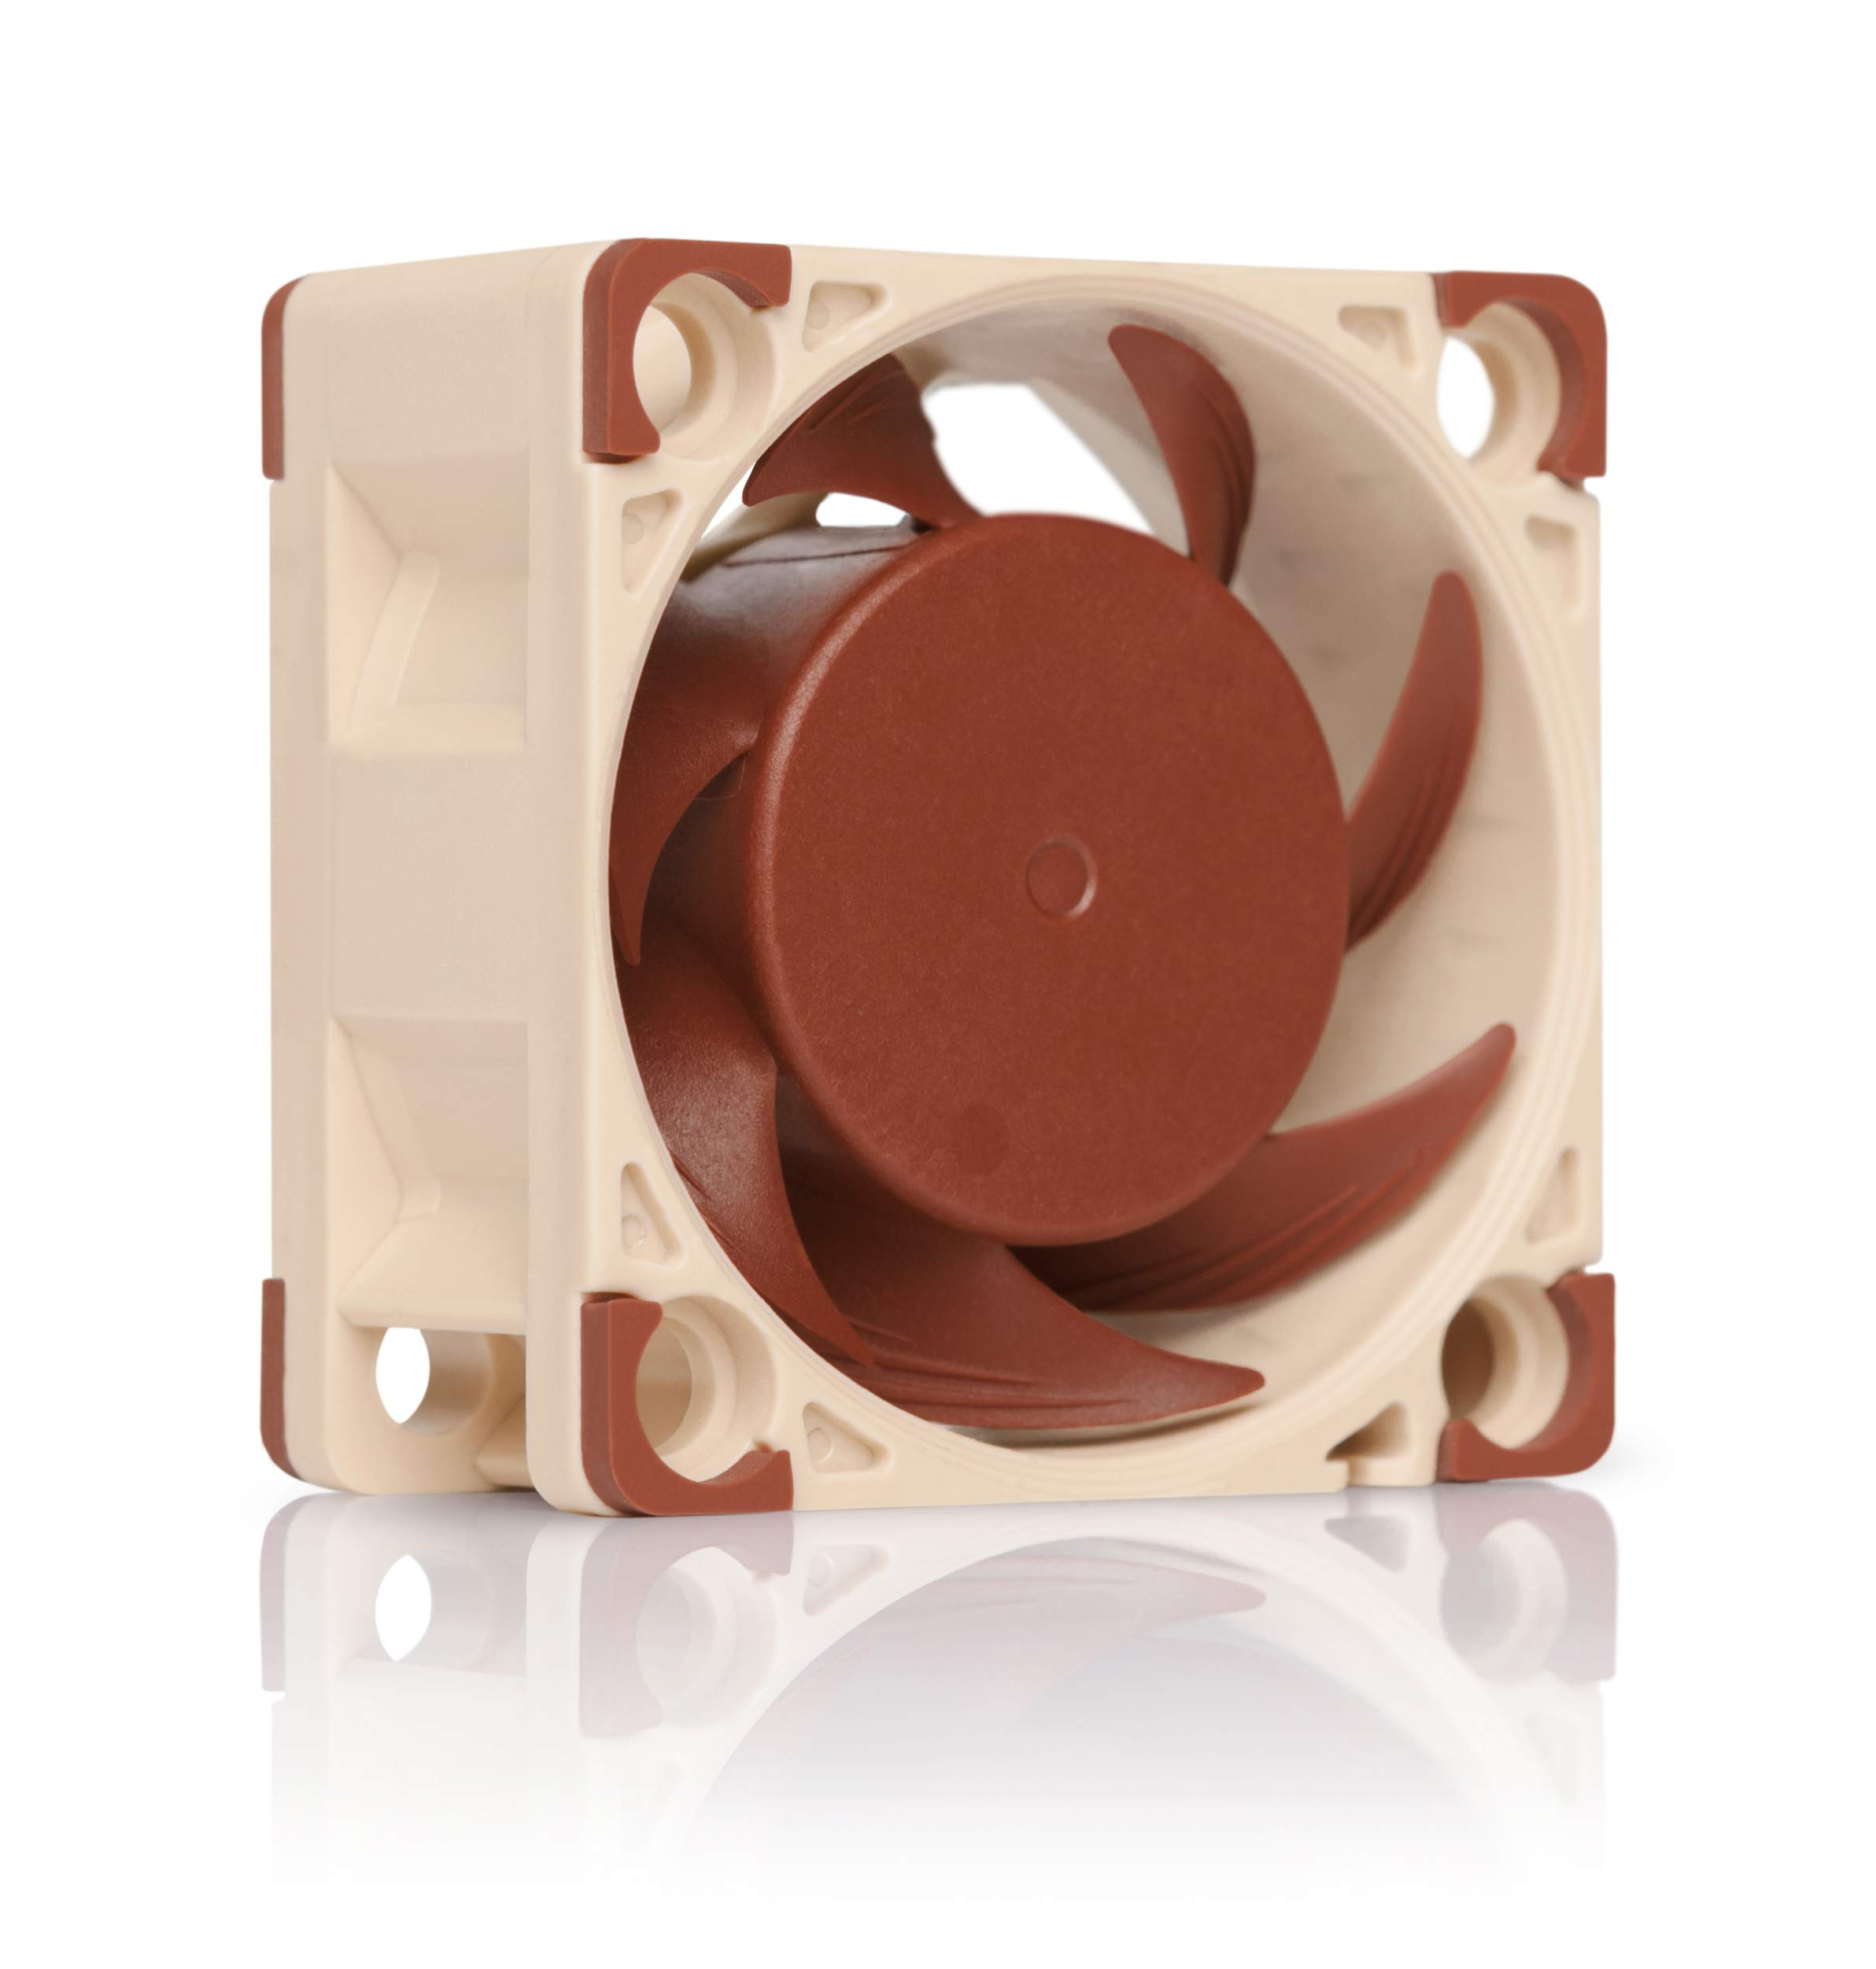 NOCTUA NF-A4x20 PWM, Premium Quiet Fan, 4-Pin (40x20mm, Brown) by NOCTUA